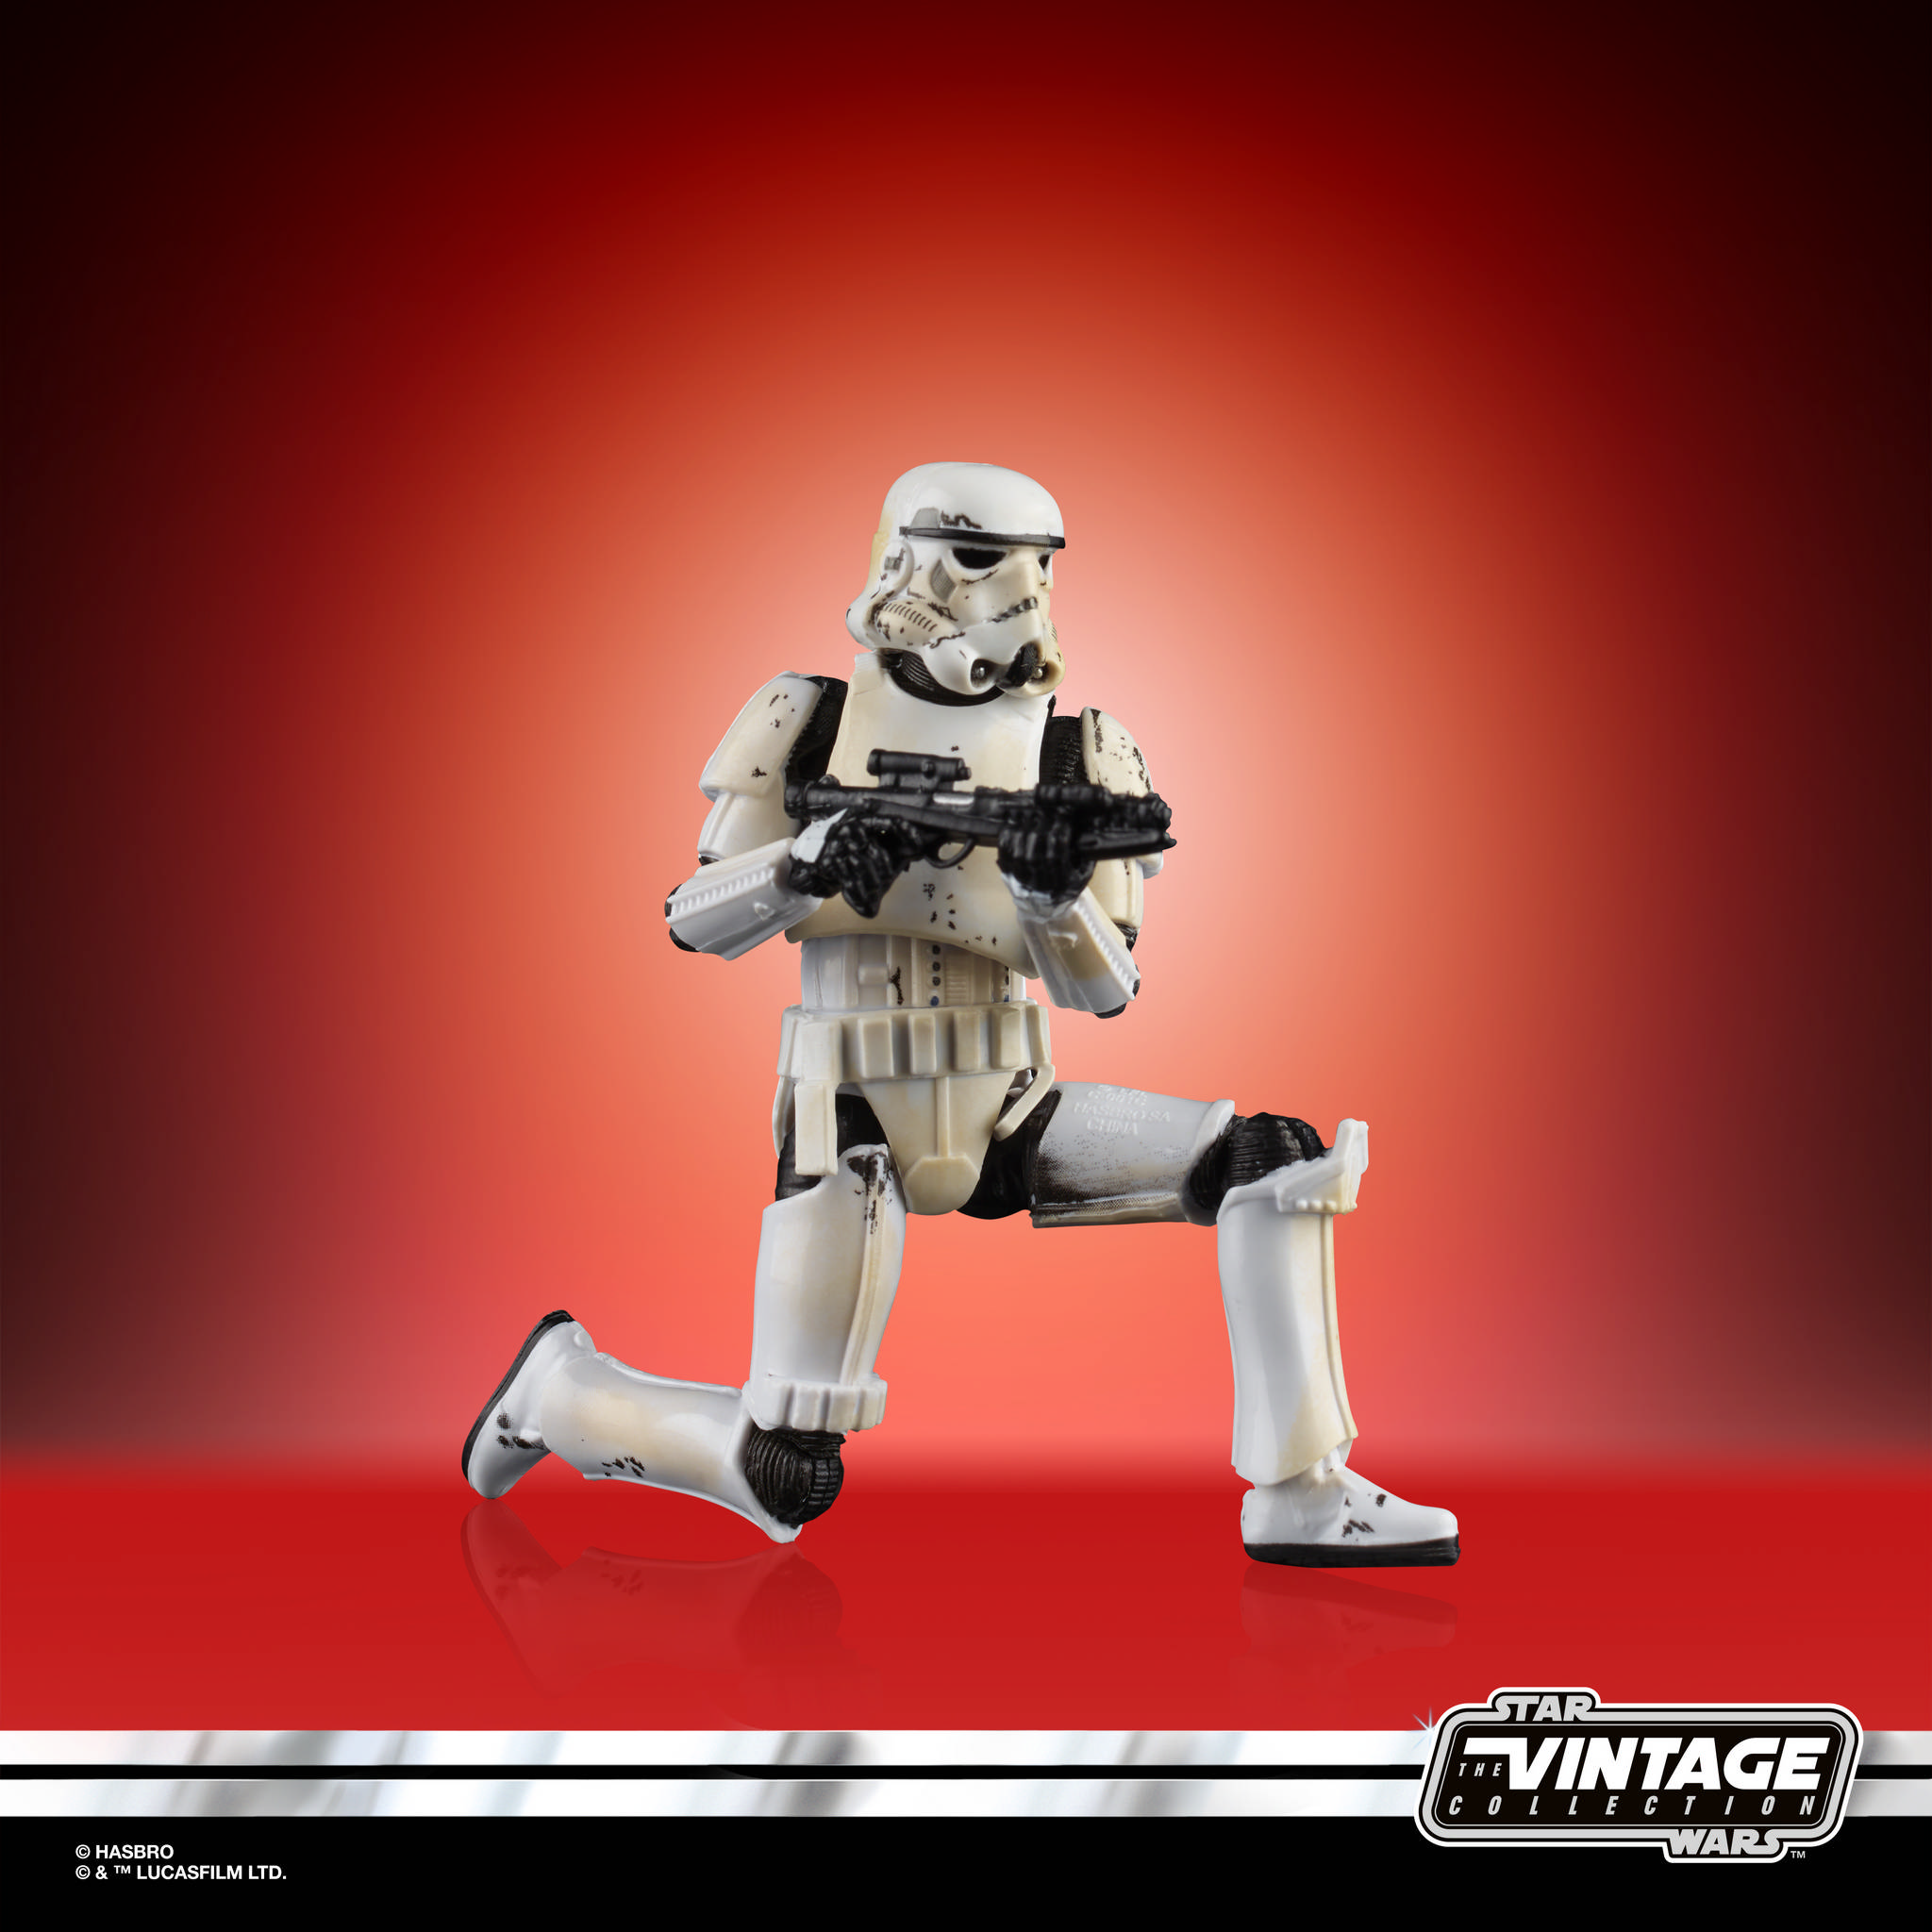 STAR WARS THE VINTAGE COLLECTION 3.75 INCH STORM TROOPER Figure 1